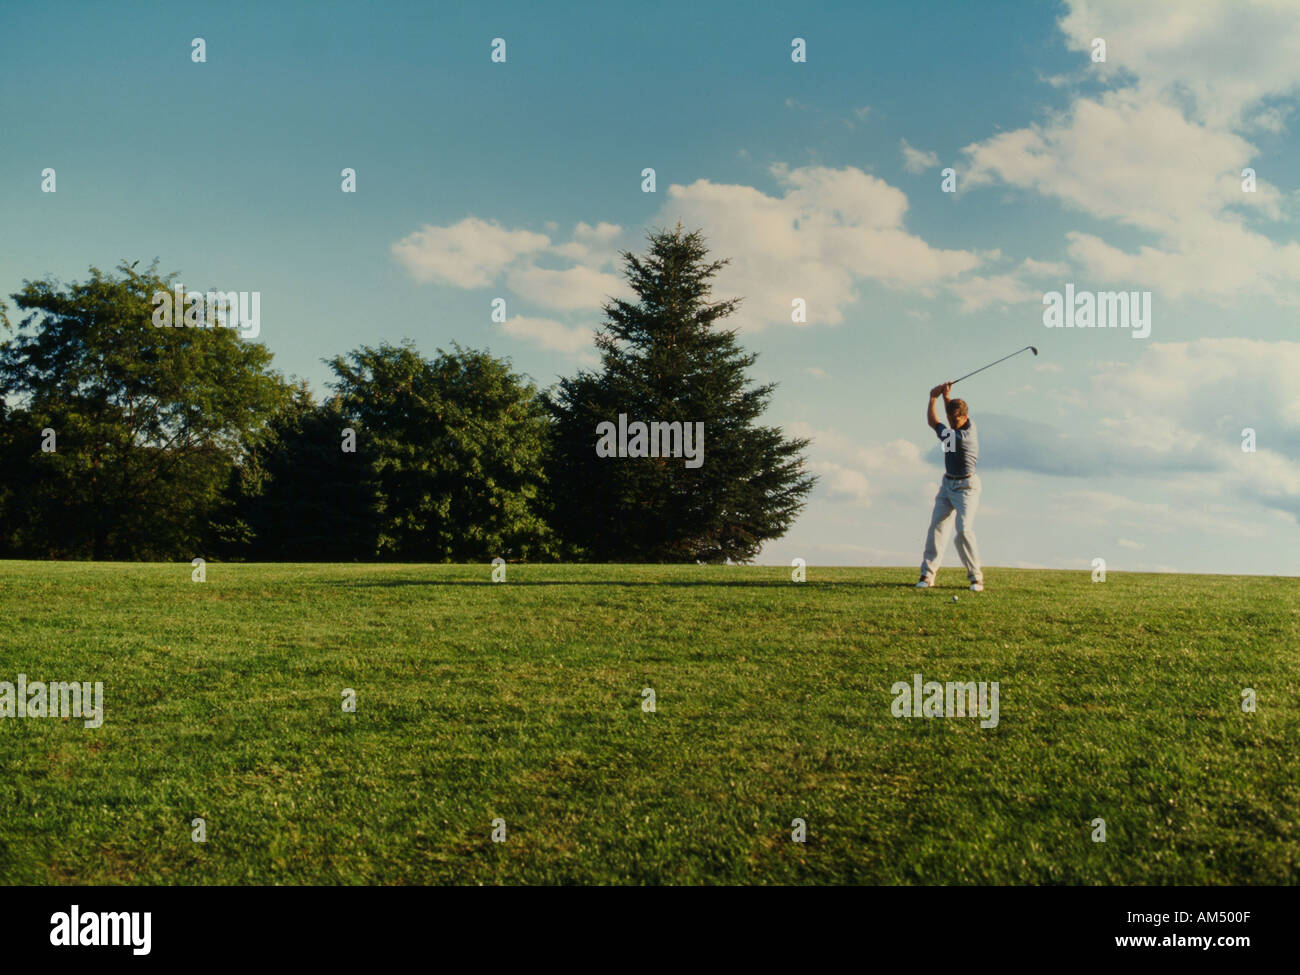 man drives a golf ball from a grassy fairway - Stock Image